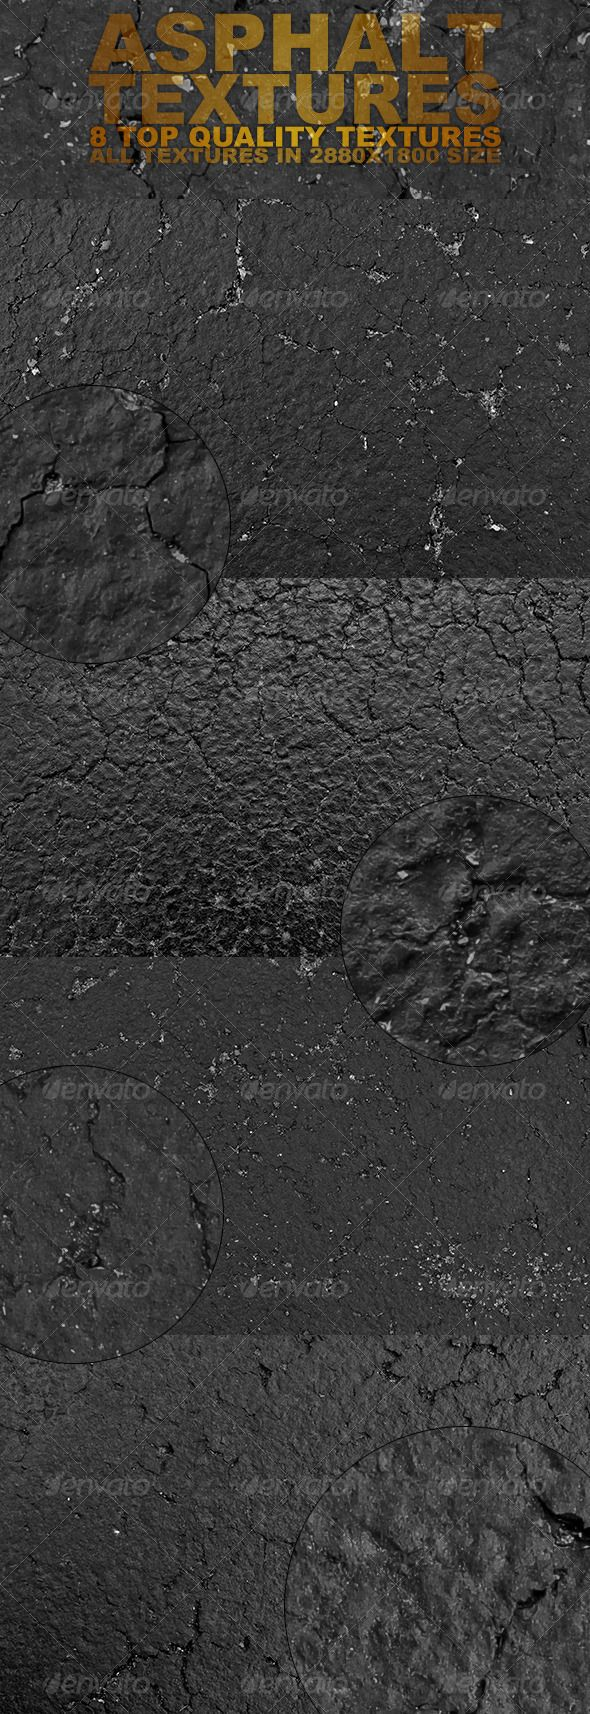 Black Asphalt Textures — Photoshop PSD #asphalt #high quality textures • Available here → https://graphicriver.net/item/black-asphalt-textures/2813211?ref=pxcr